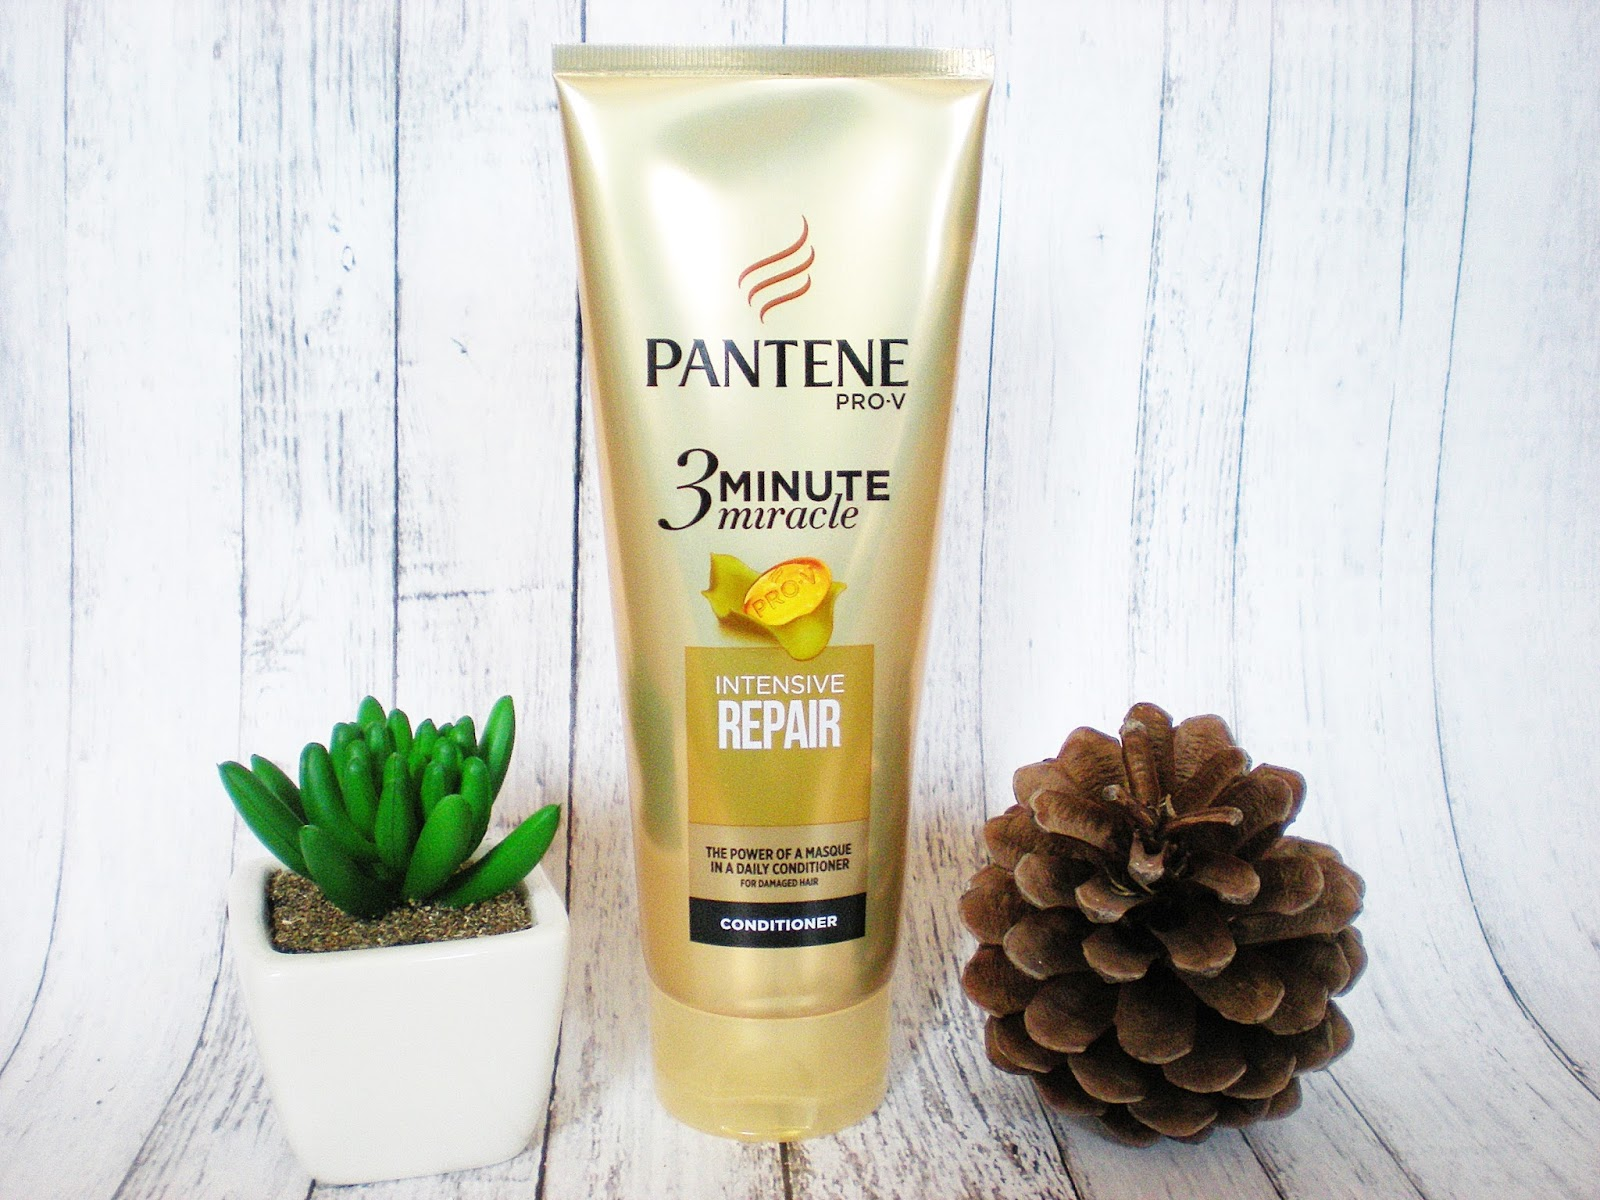 Pantene, 3 Minute Miracle, Repair & Protect